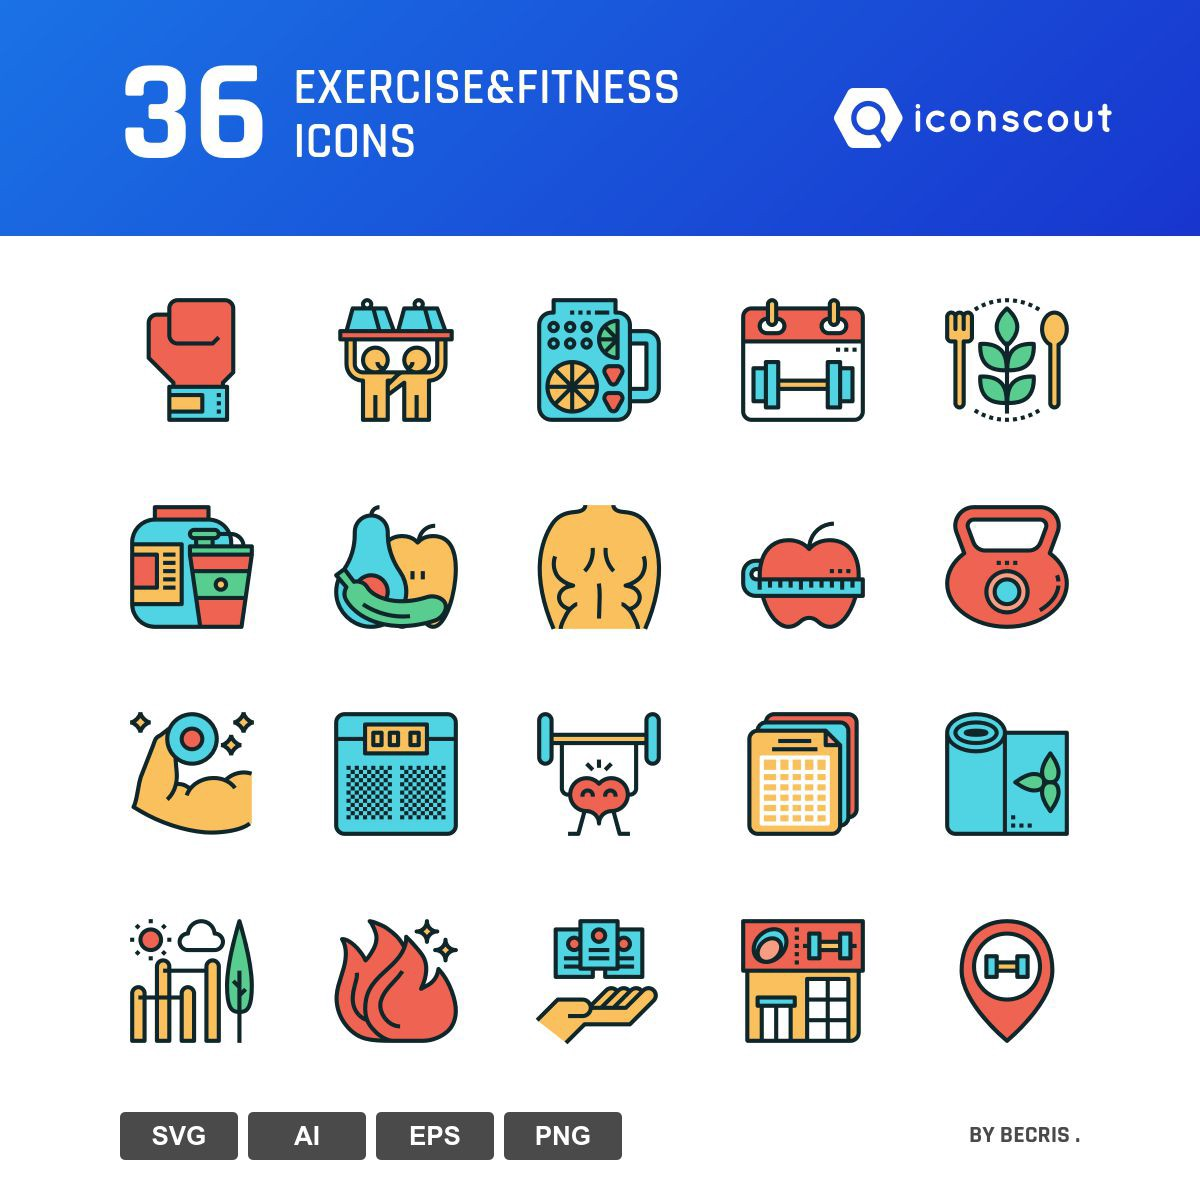 Exercise&Fitness icons by Becris .